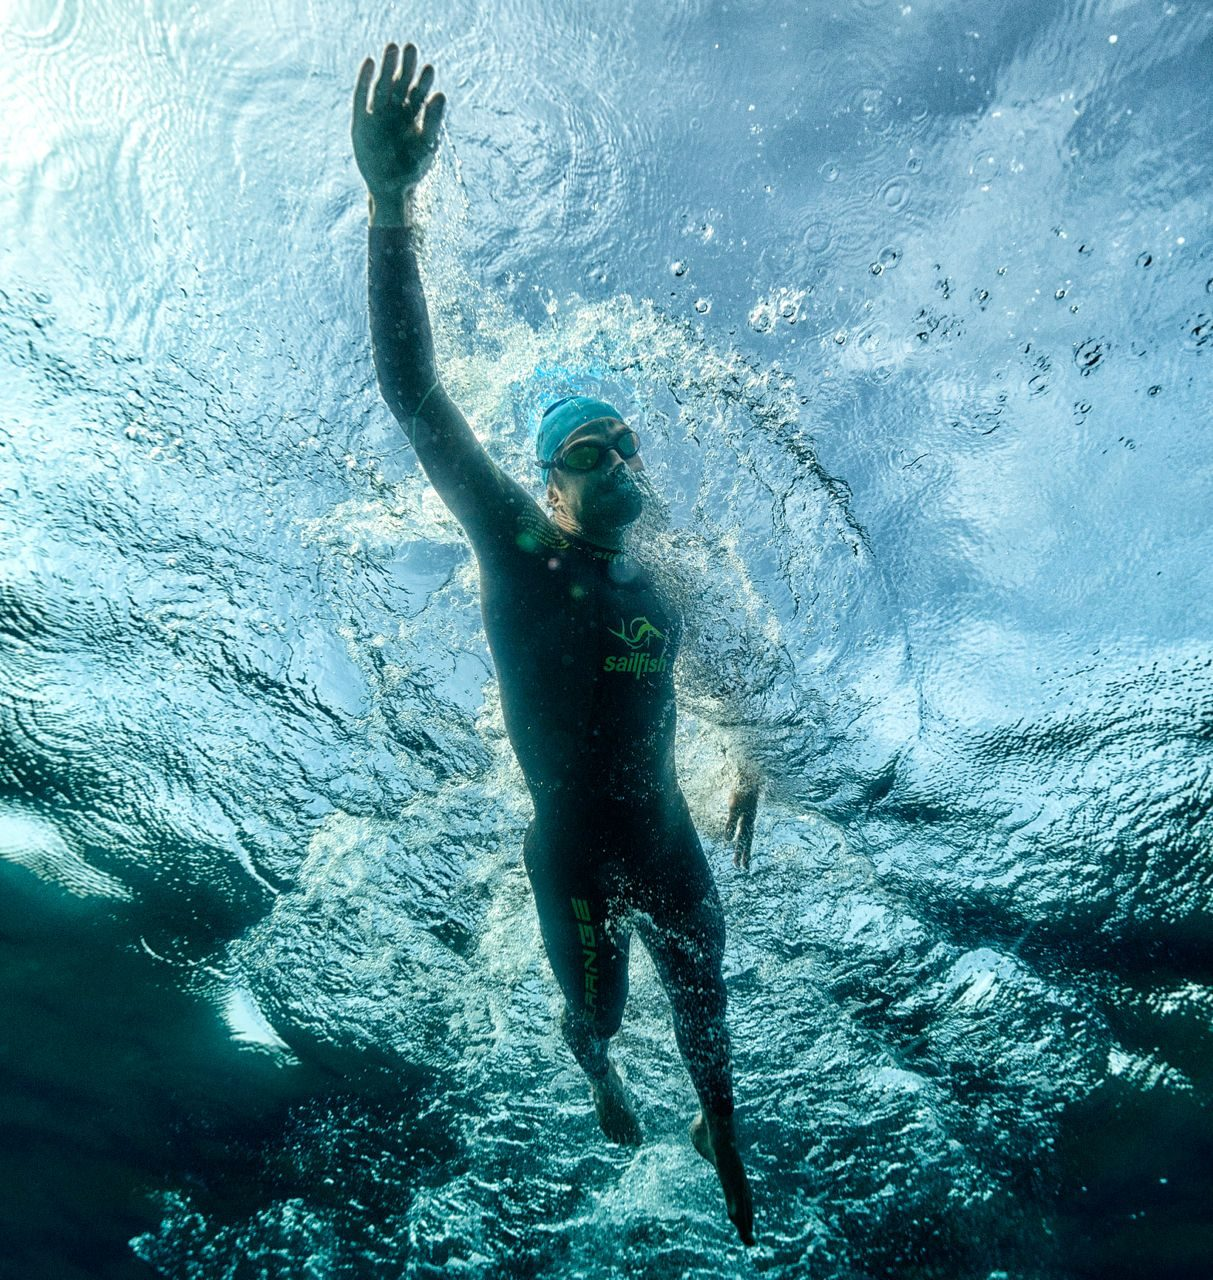 Athlete swimming in open water